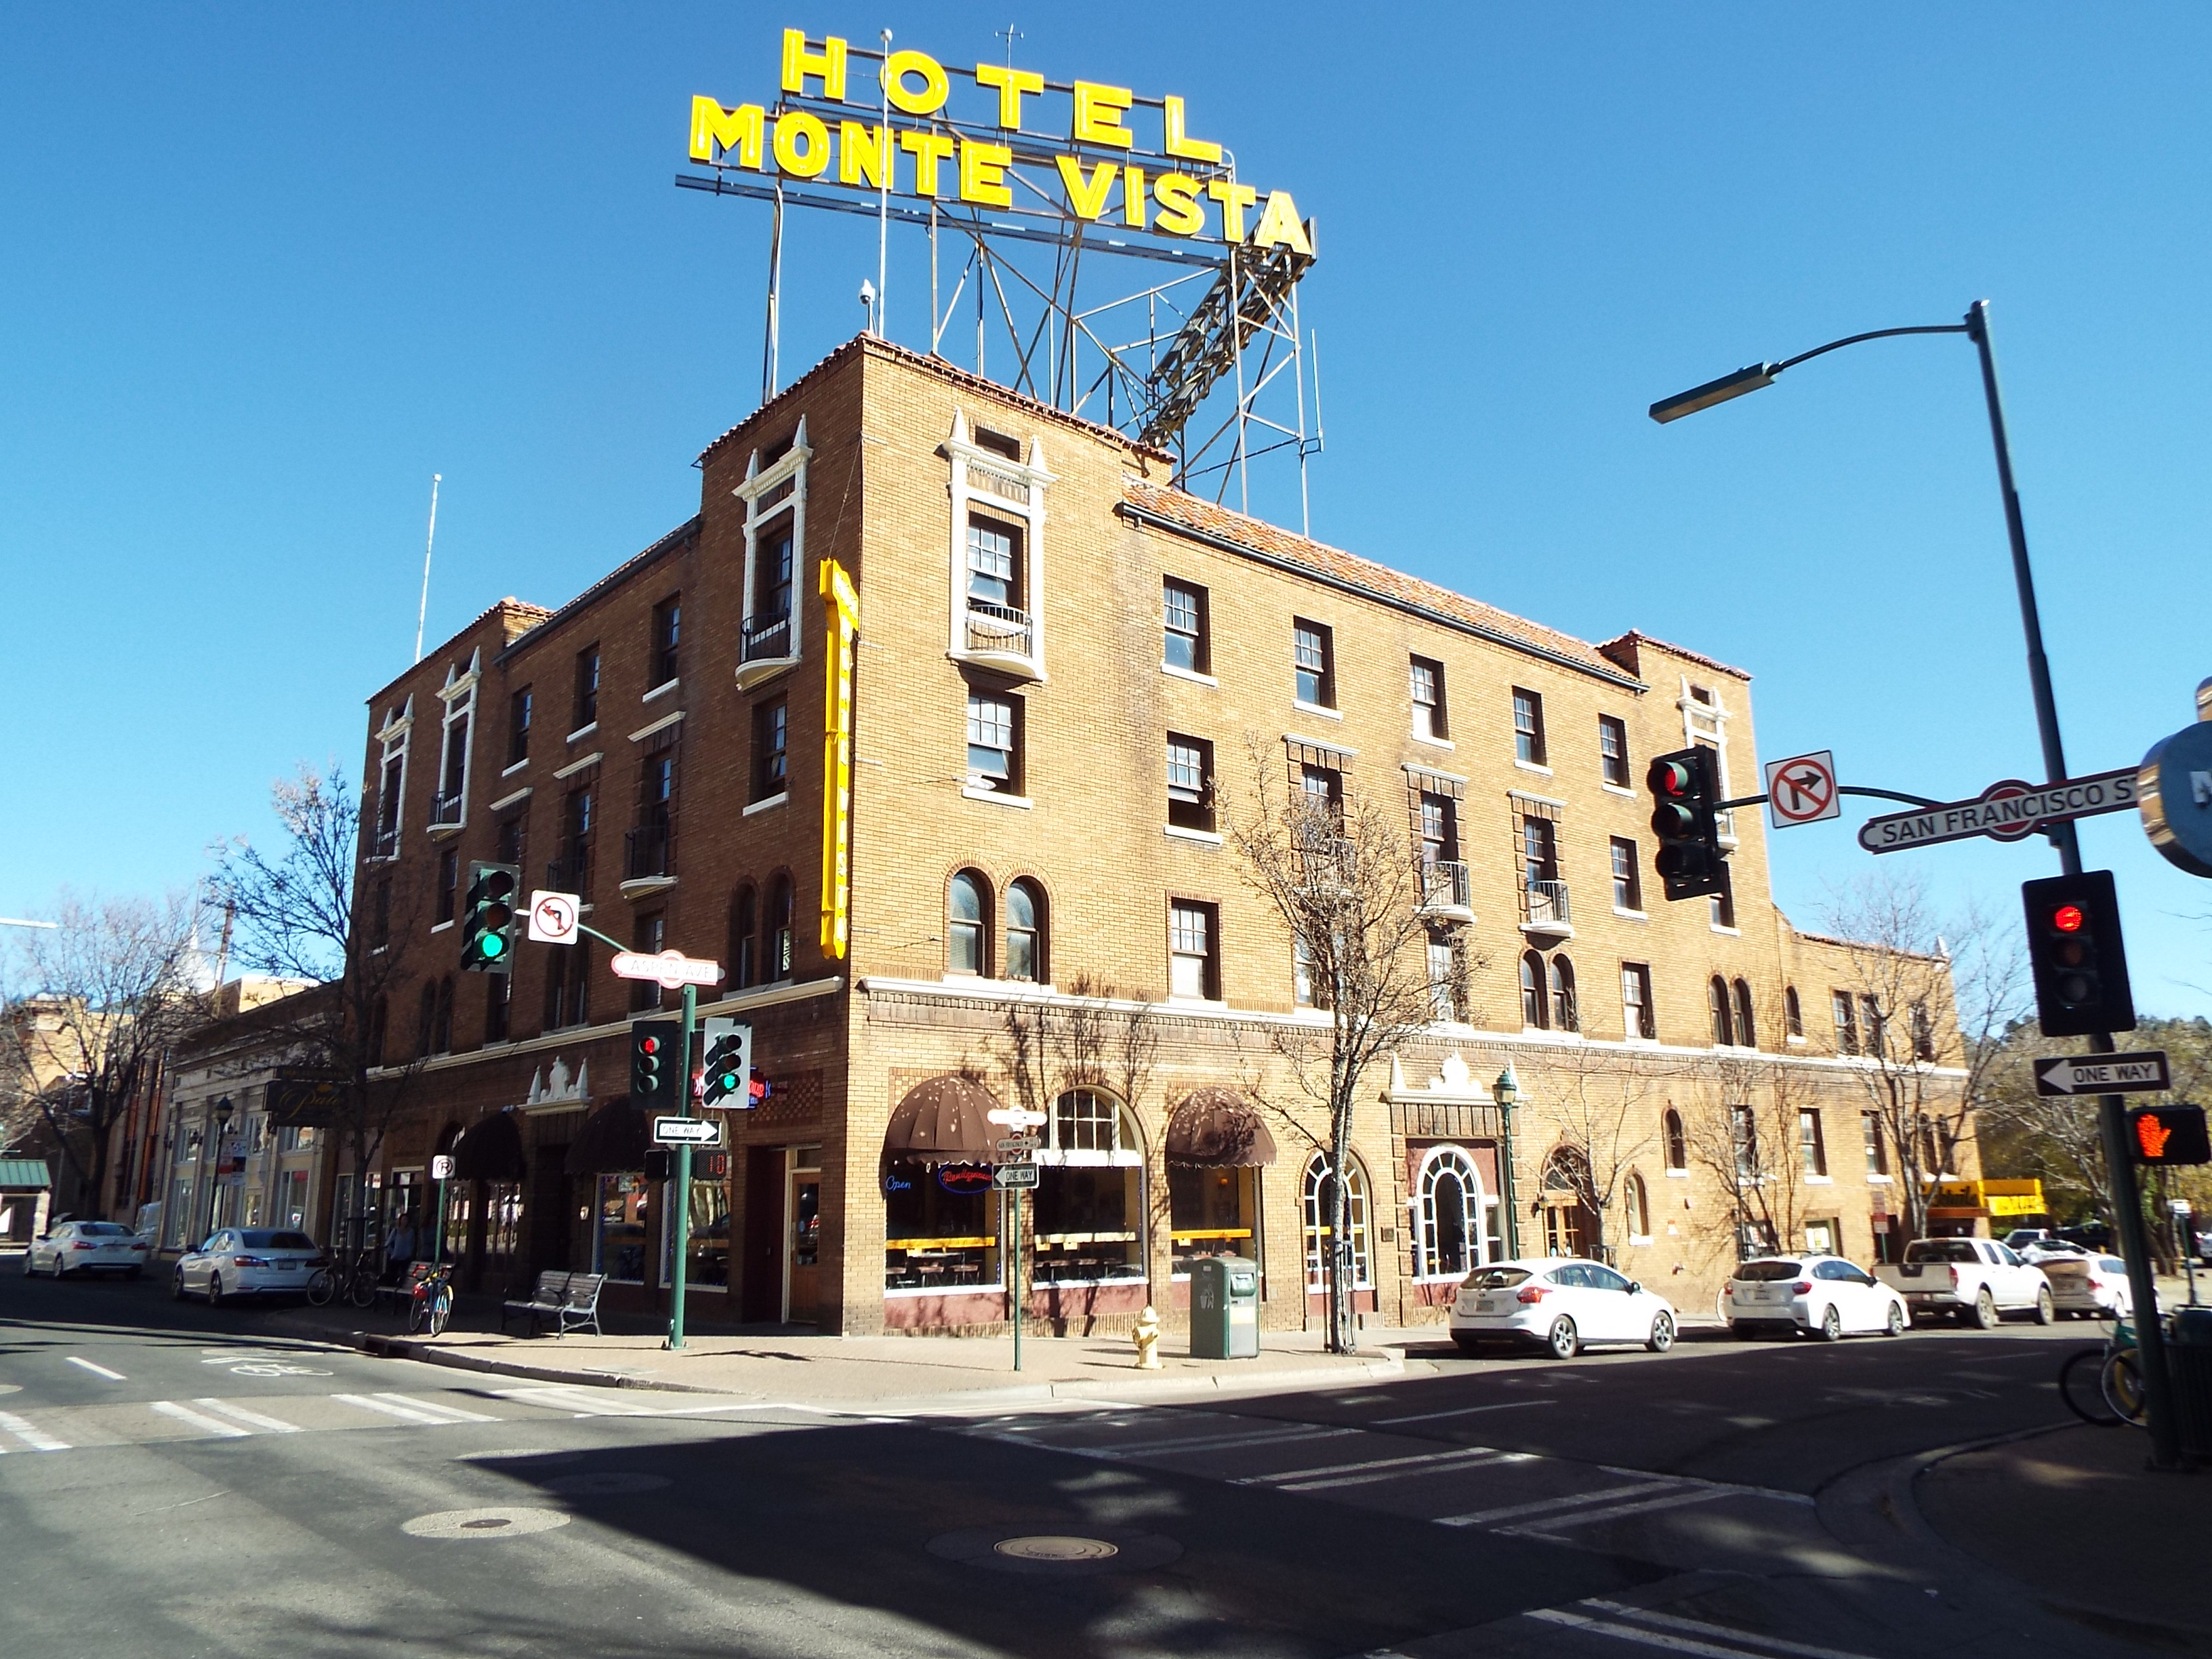 The Monte Vista Hotel List of historic